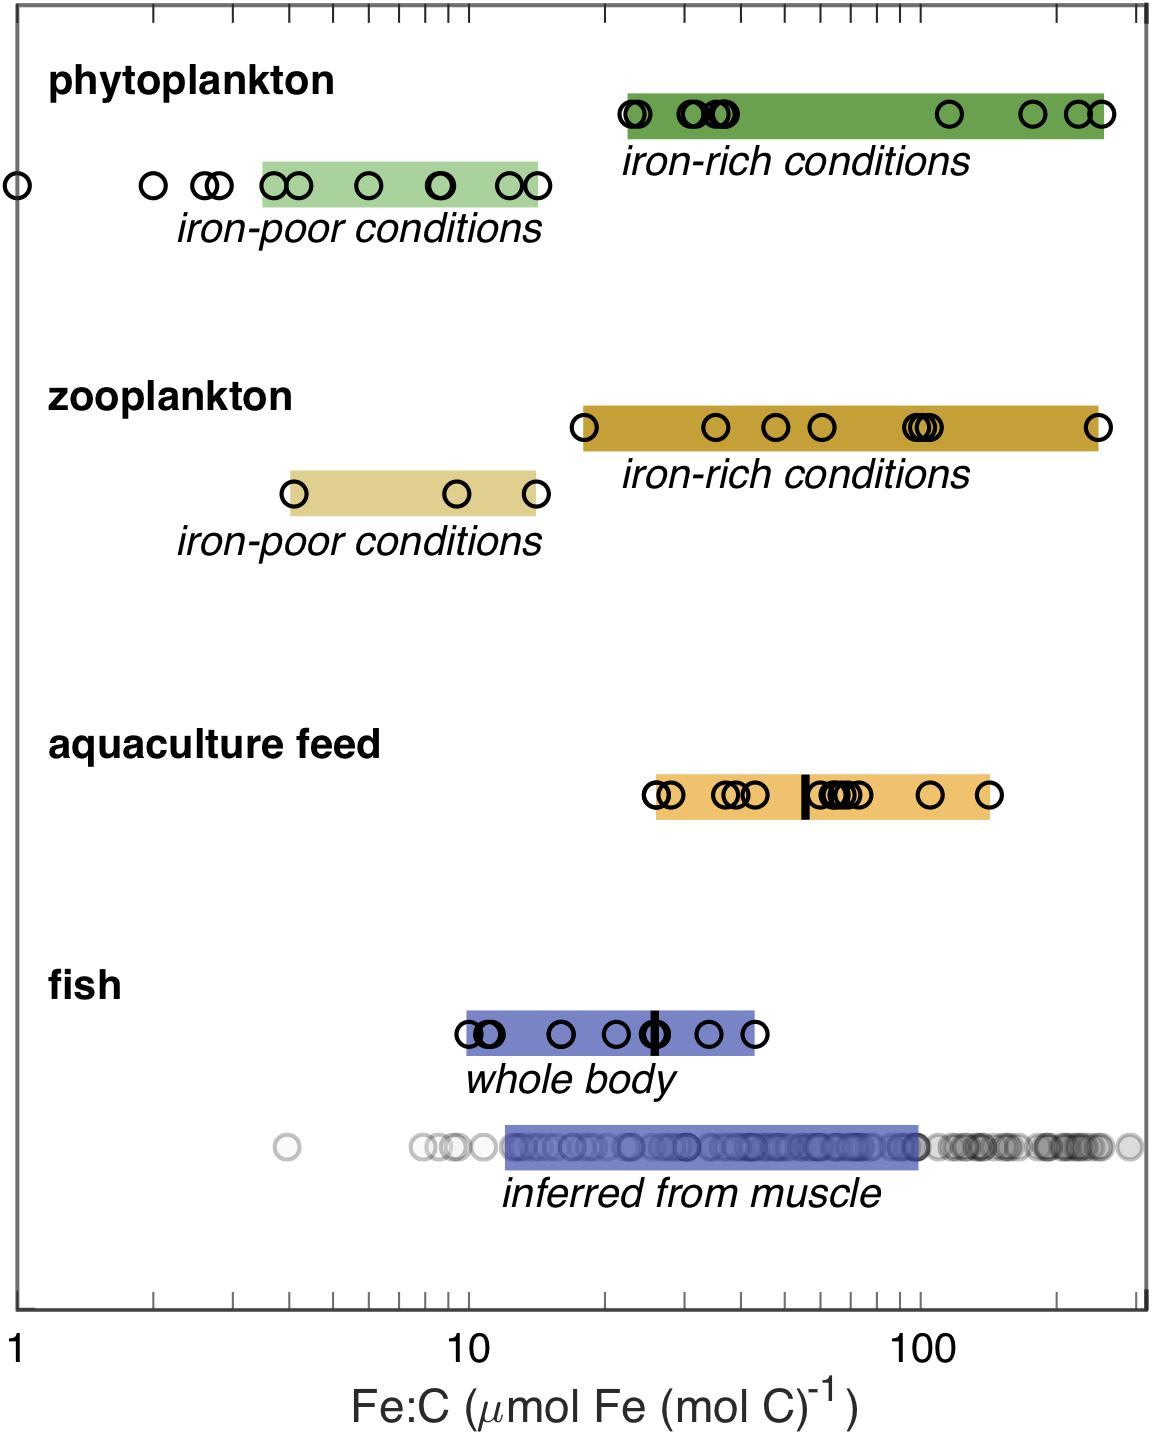 Frontiers | Growth Limitation of Marine Fish by Low Iron